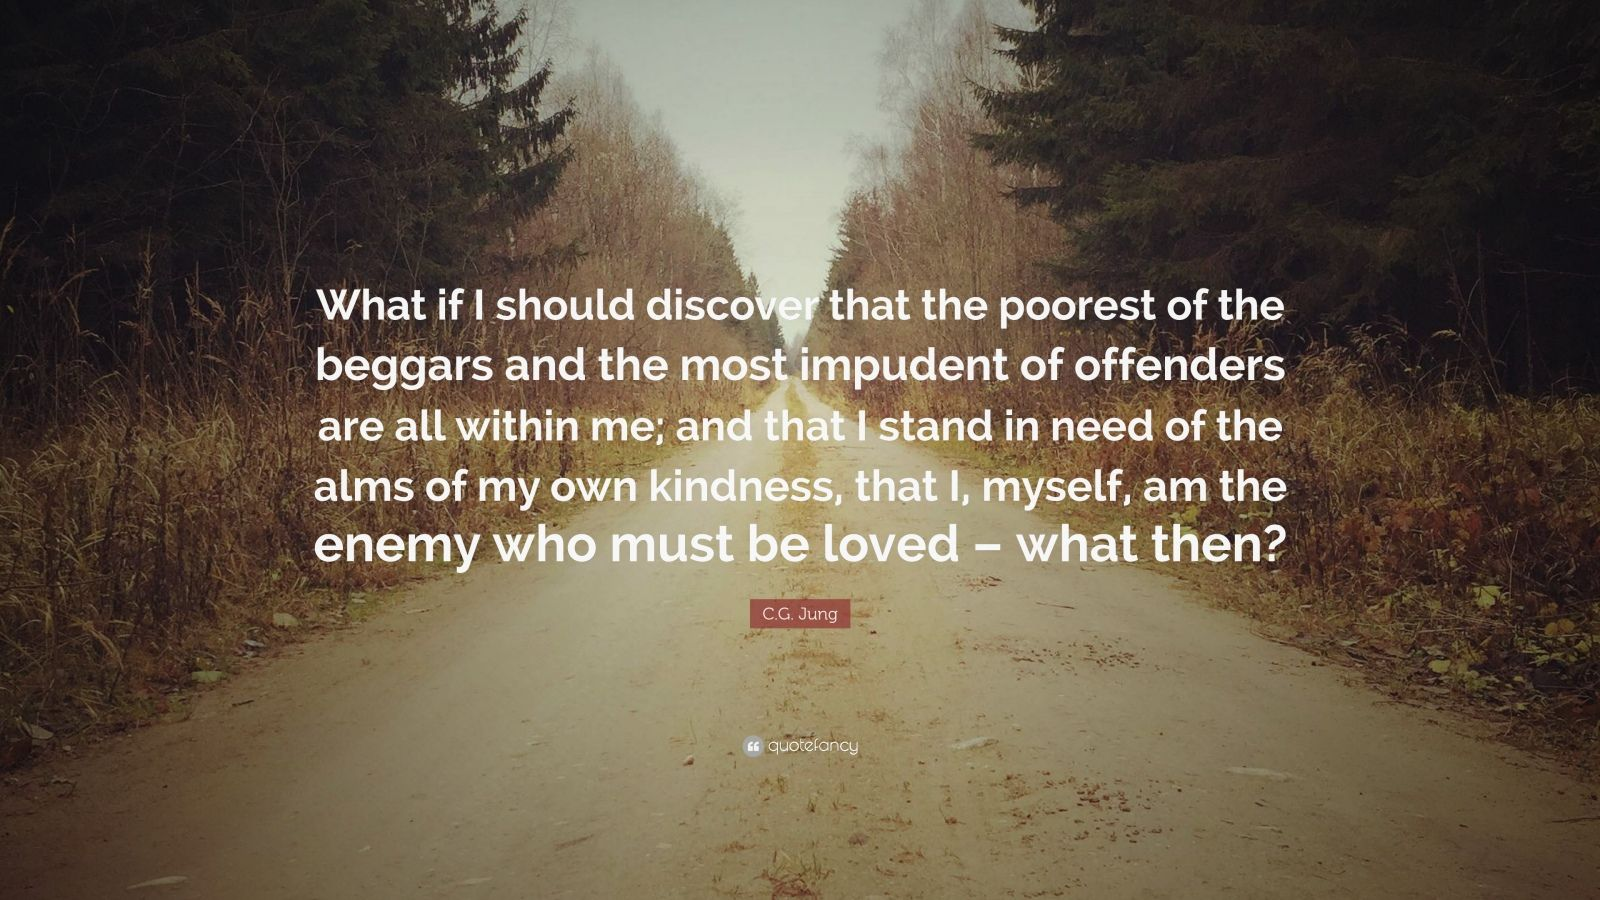 "C.G. Jung Quote: ""What if I should discover that the poorest of the beggars and the most impudent of offenders are all within me; and that I stand in need of the alms of my own kindness, that I, myself, am the enemy who must be loved – what then?"""